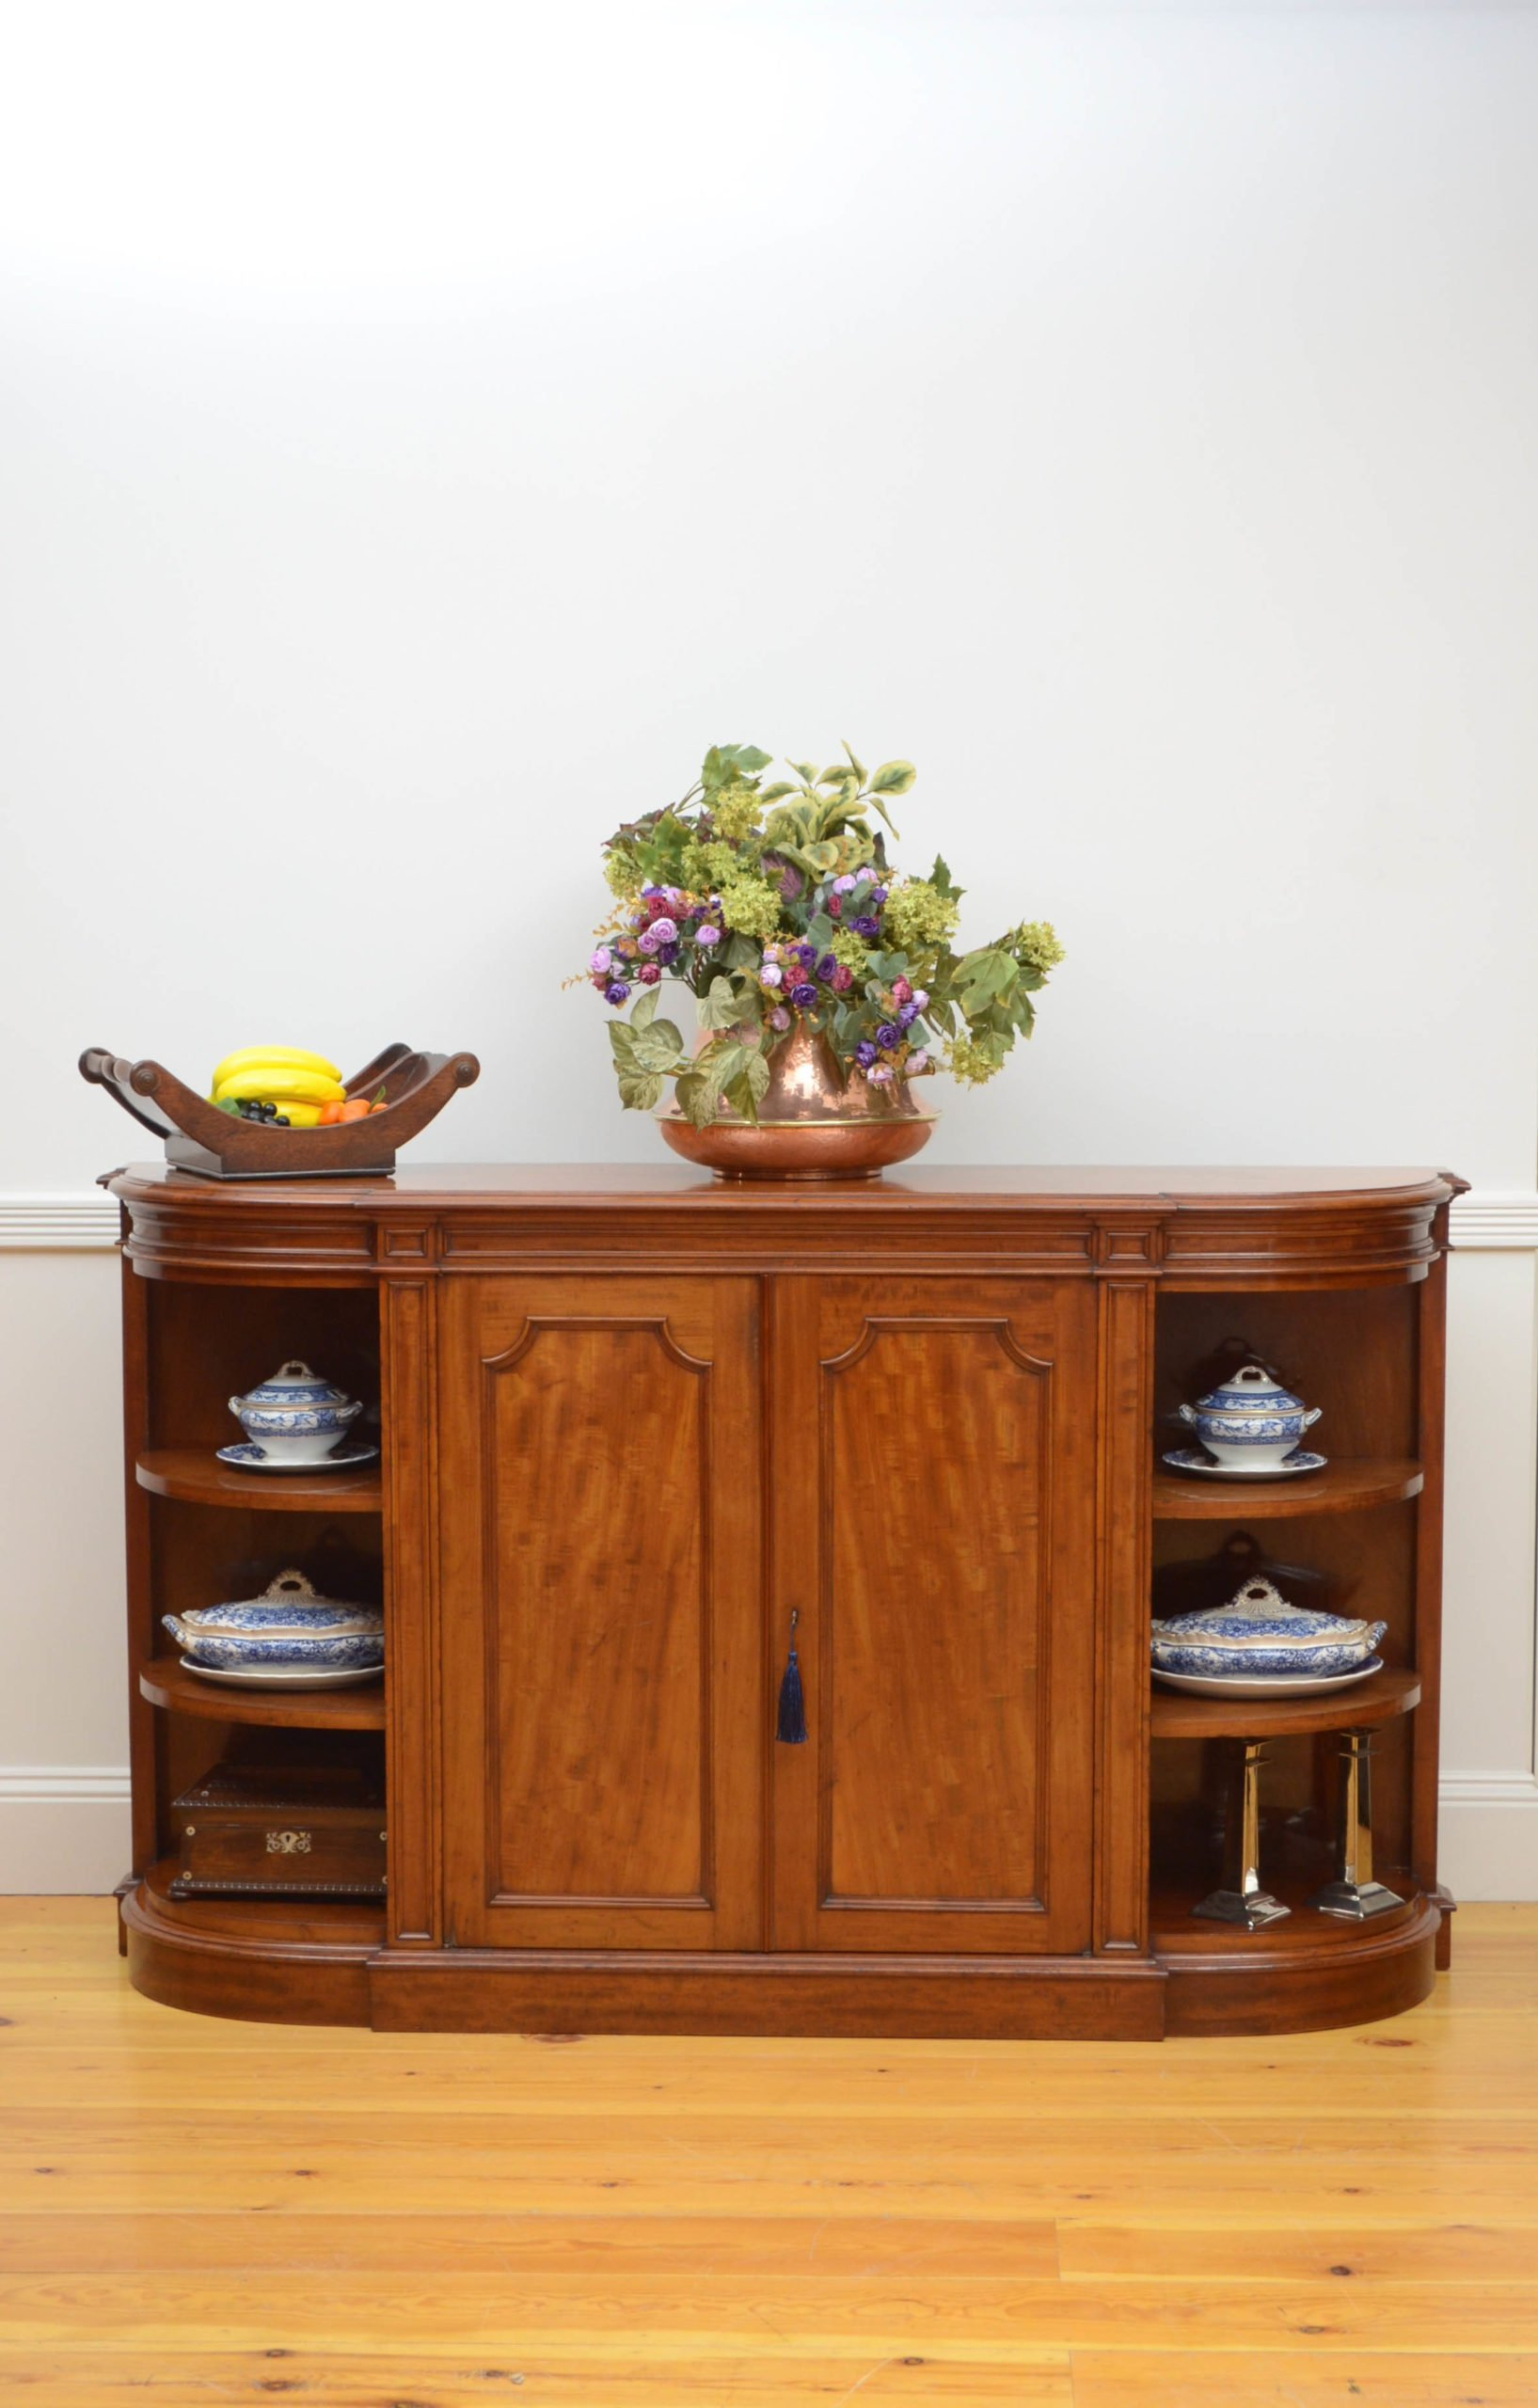 Howard and Sons Mahogany sideboard